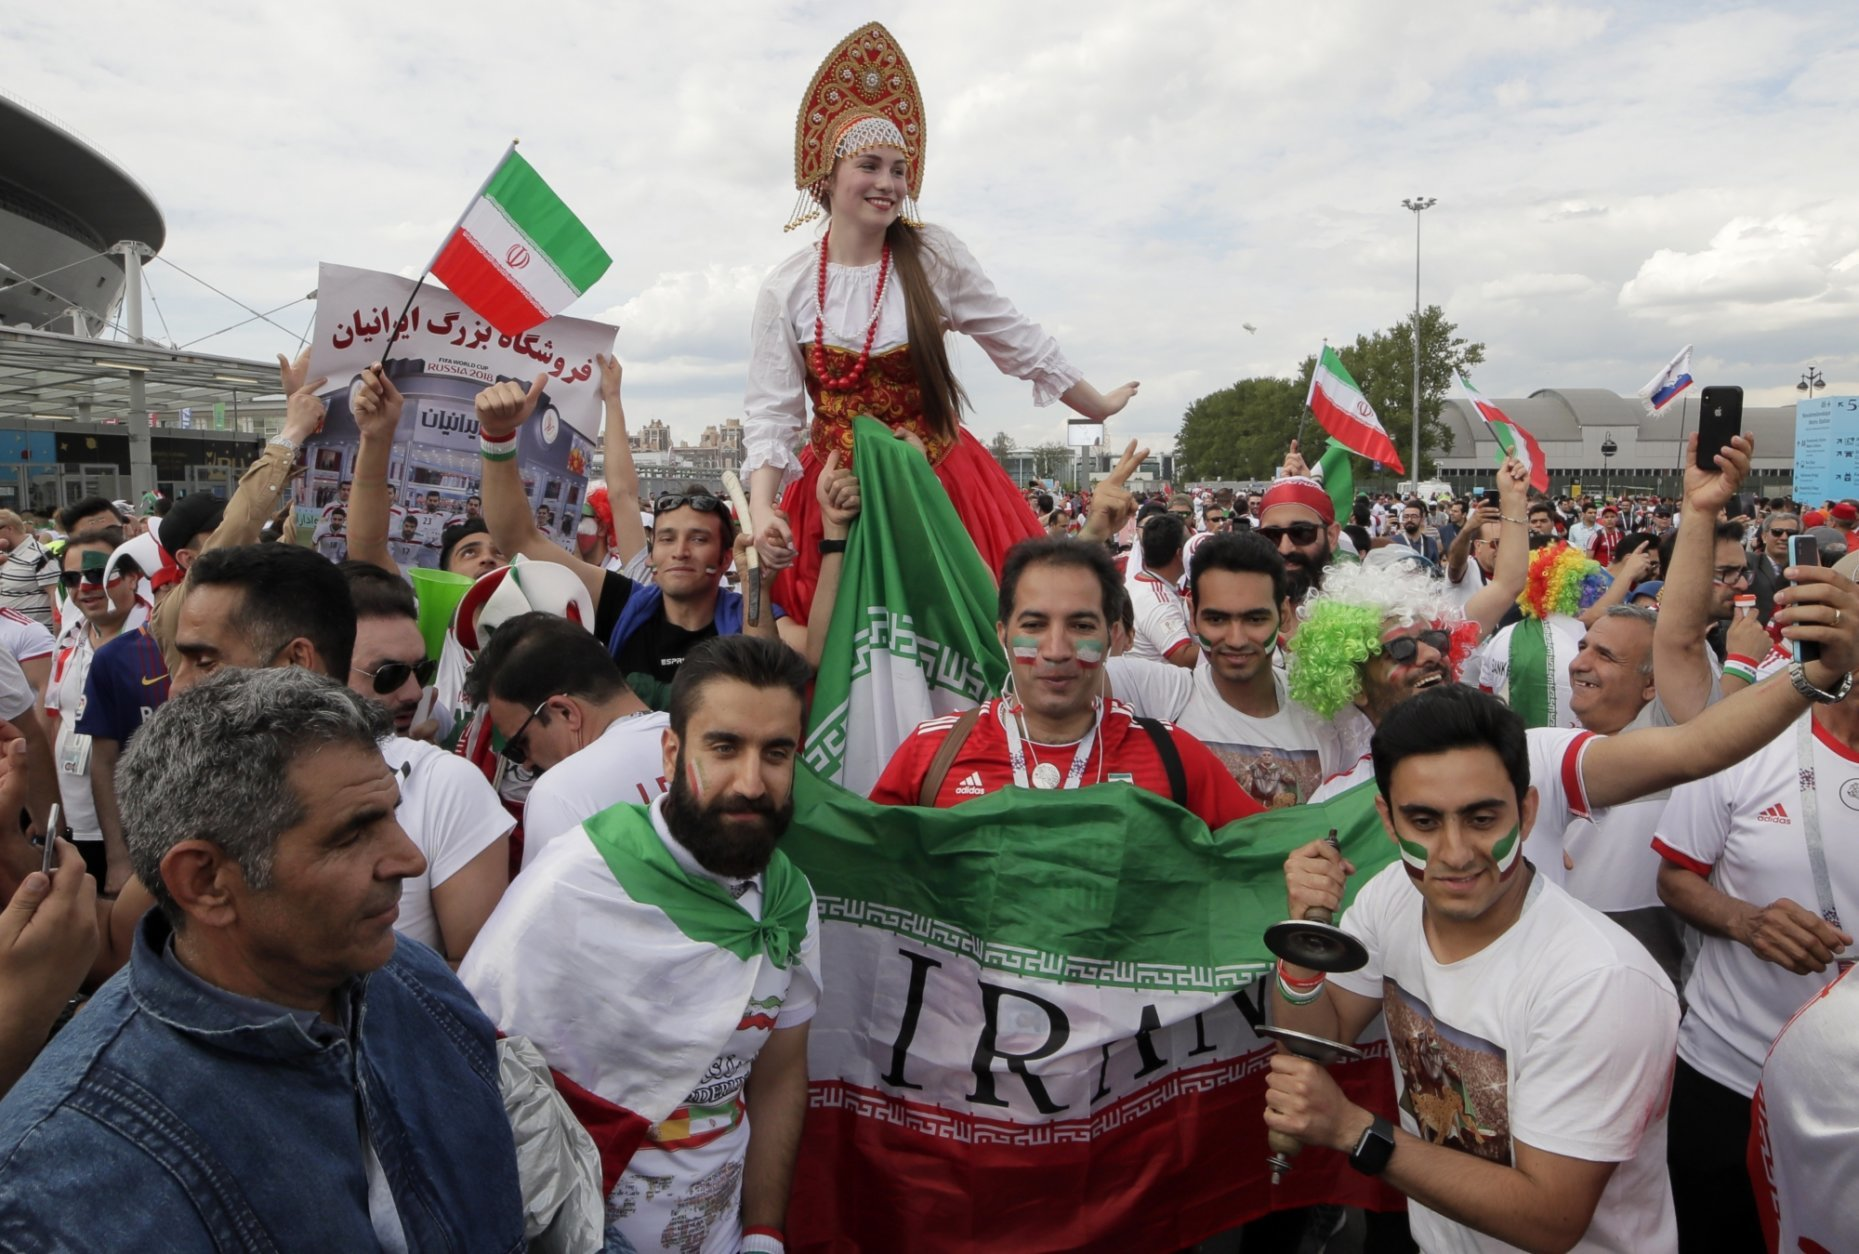 Iranian fans pose with a woman dressed a Russian national costume in front of 'Saint Petersburg' stadium prior the group B match between Morocco and Iran at the 2018 soccer World Cup in St.Petersburg, Russia, Friday, June 15, 2018. (AP Photo/Dmitri Lovetsky)